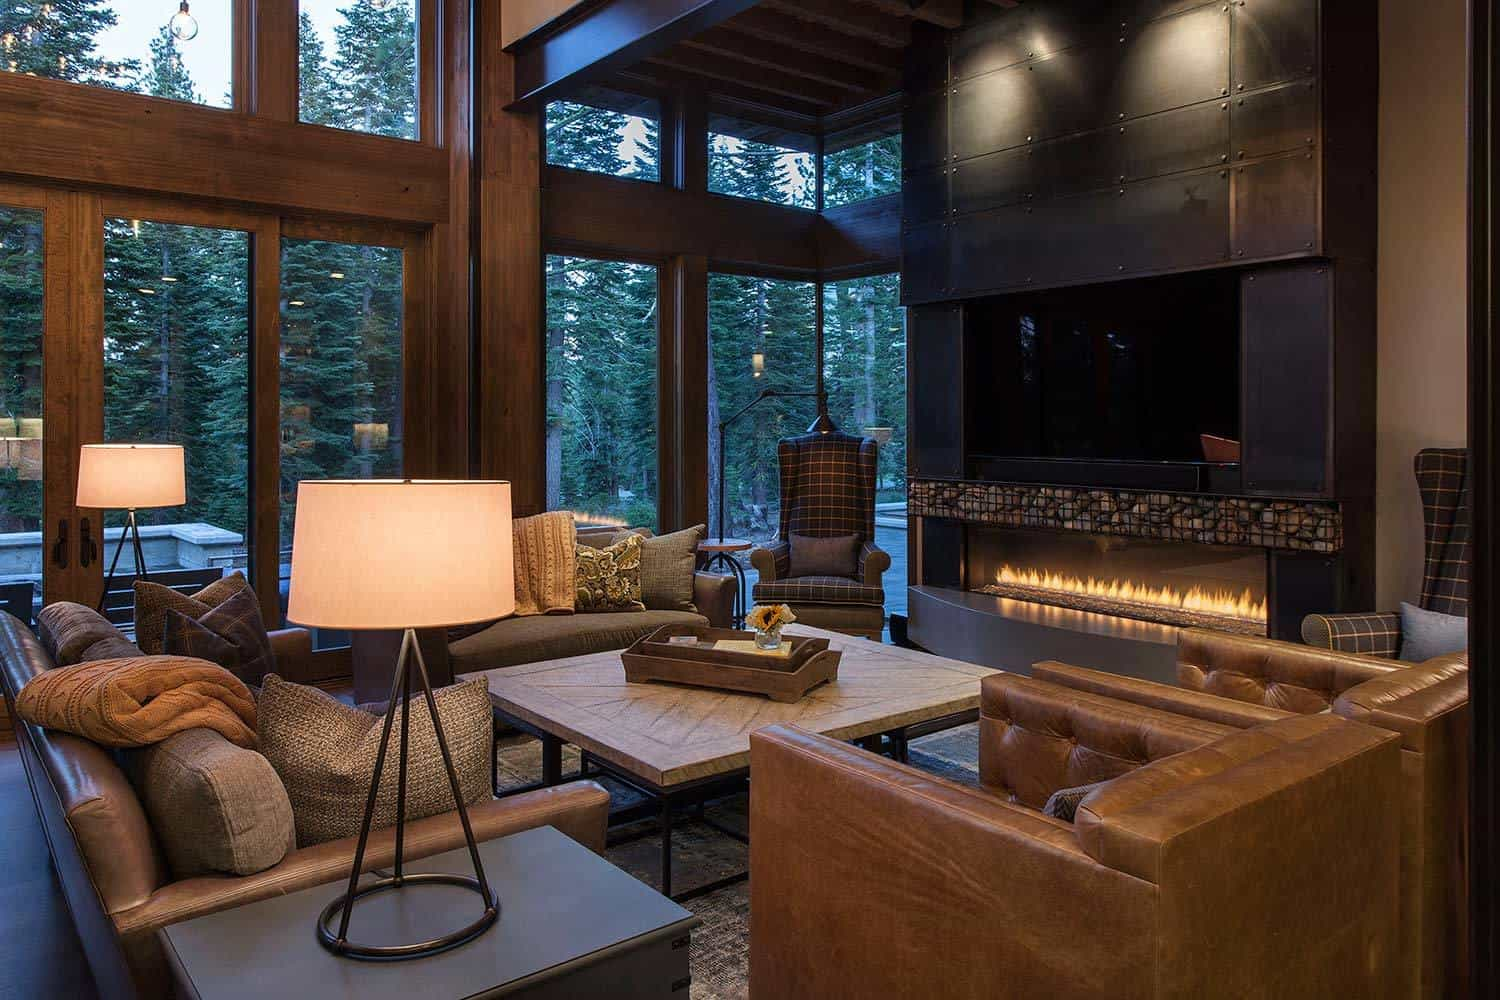 Lake tahoe getaway features contemporary barn aesthetic Interior home